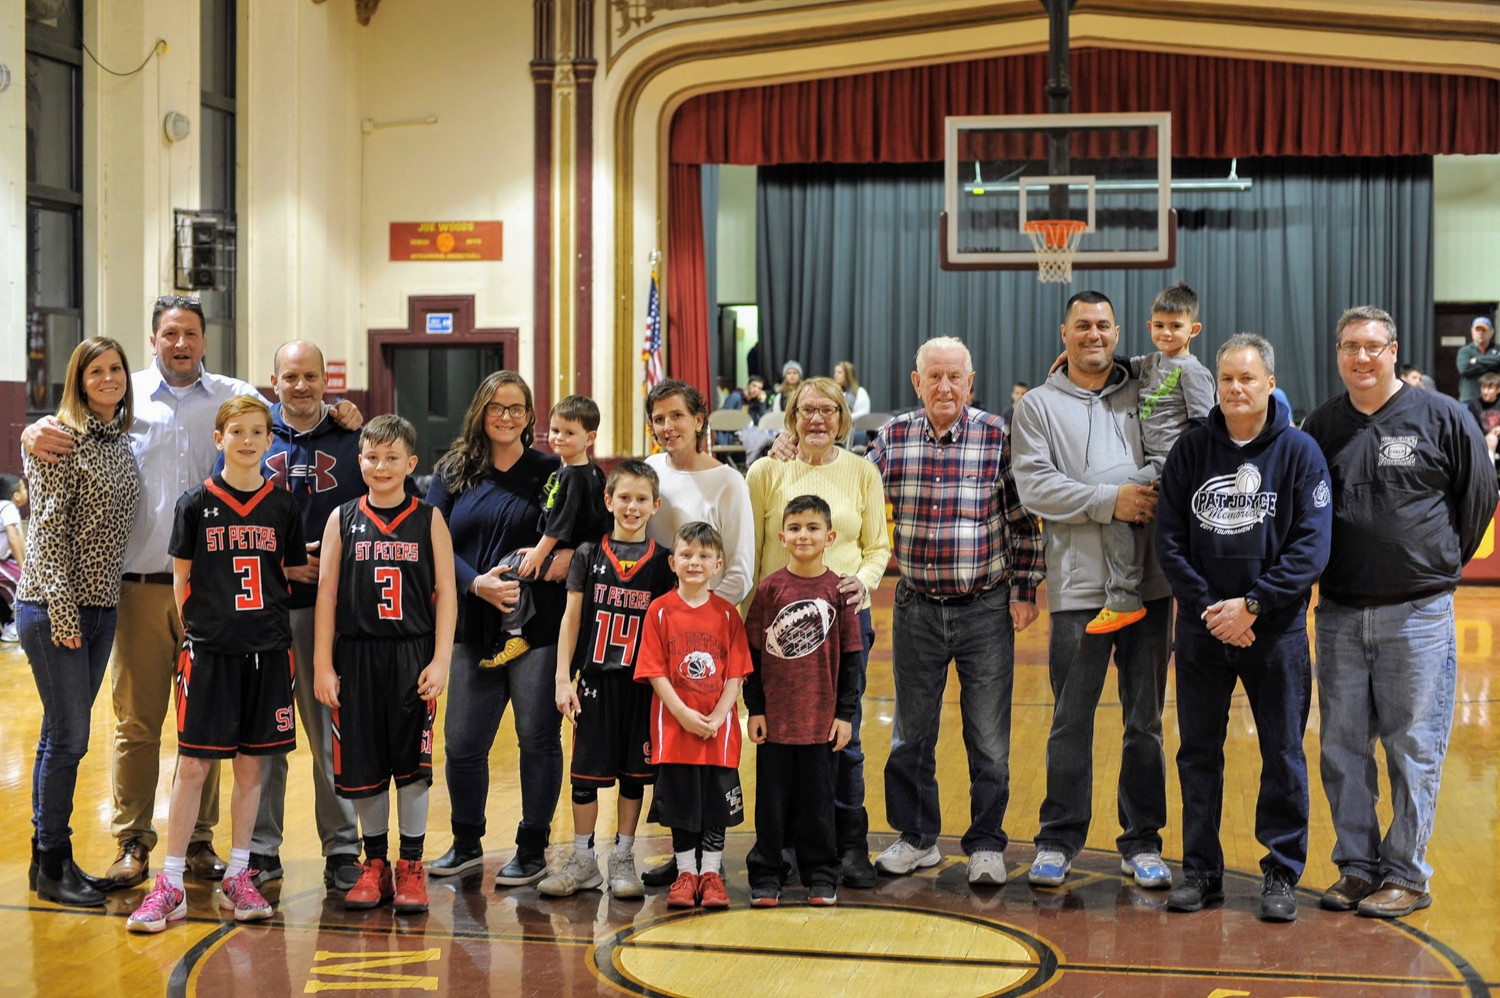 Tournament director Billy McLoughlin, first from right, and Pat Woods, second from right, join members of the Joyce family at the Eighth Annual Pat Joyce Memorial Basketball Tournament at St. Margaret's last week.